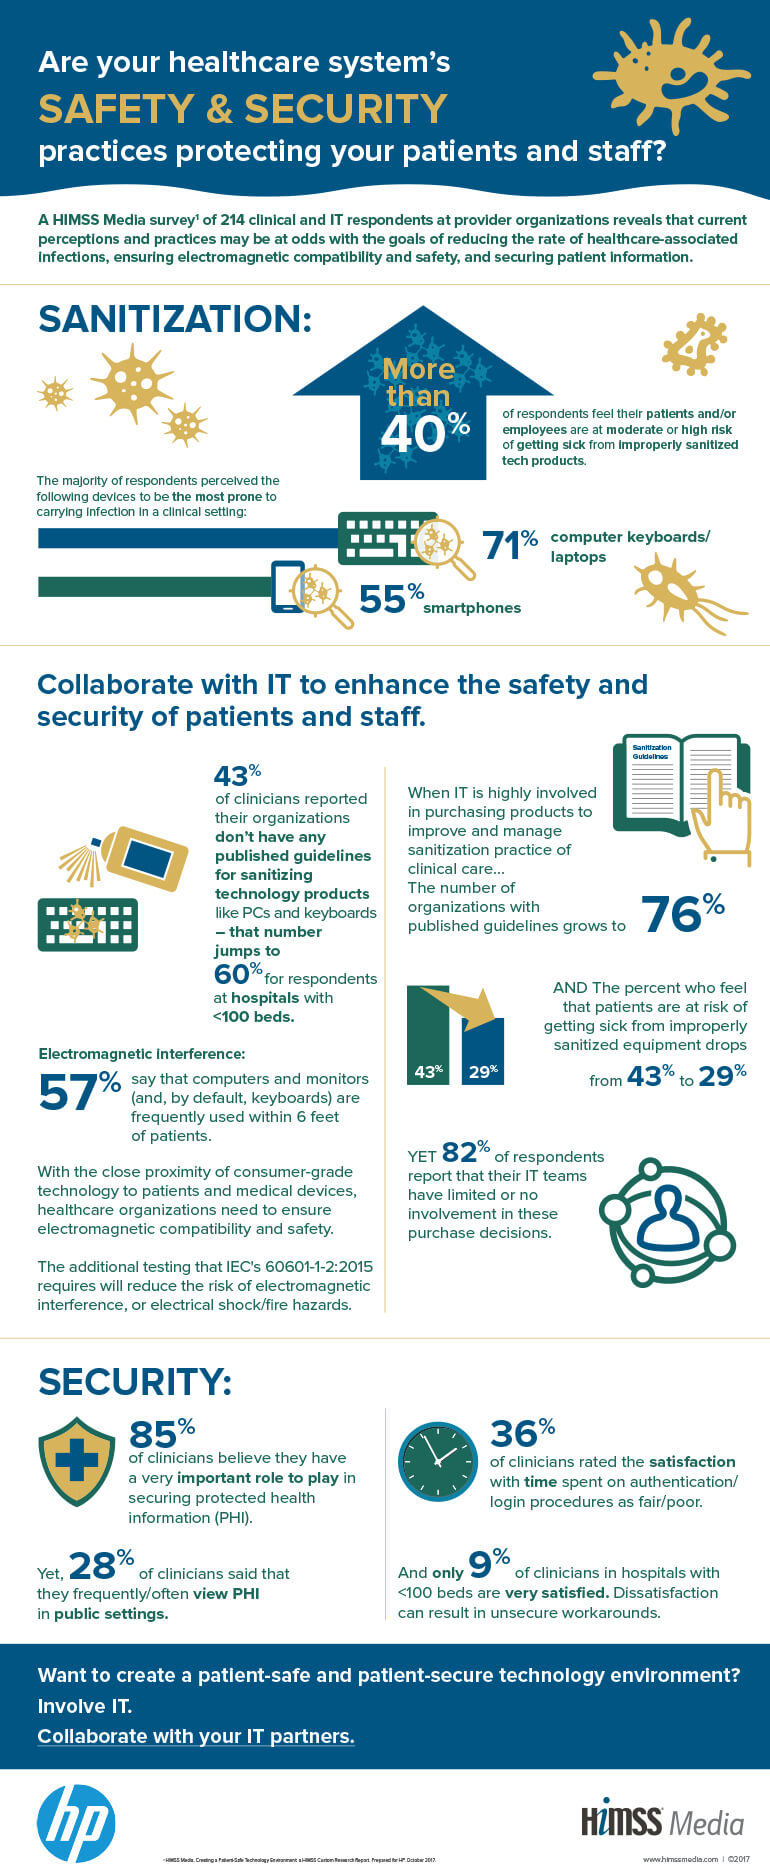 Infographic for HP's Healthcare Systems Safety and Security